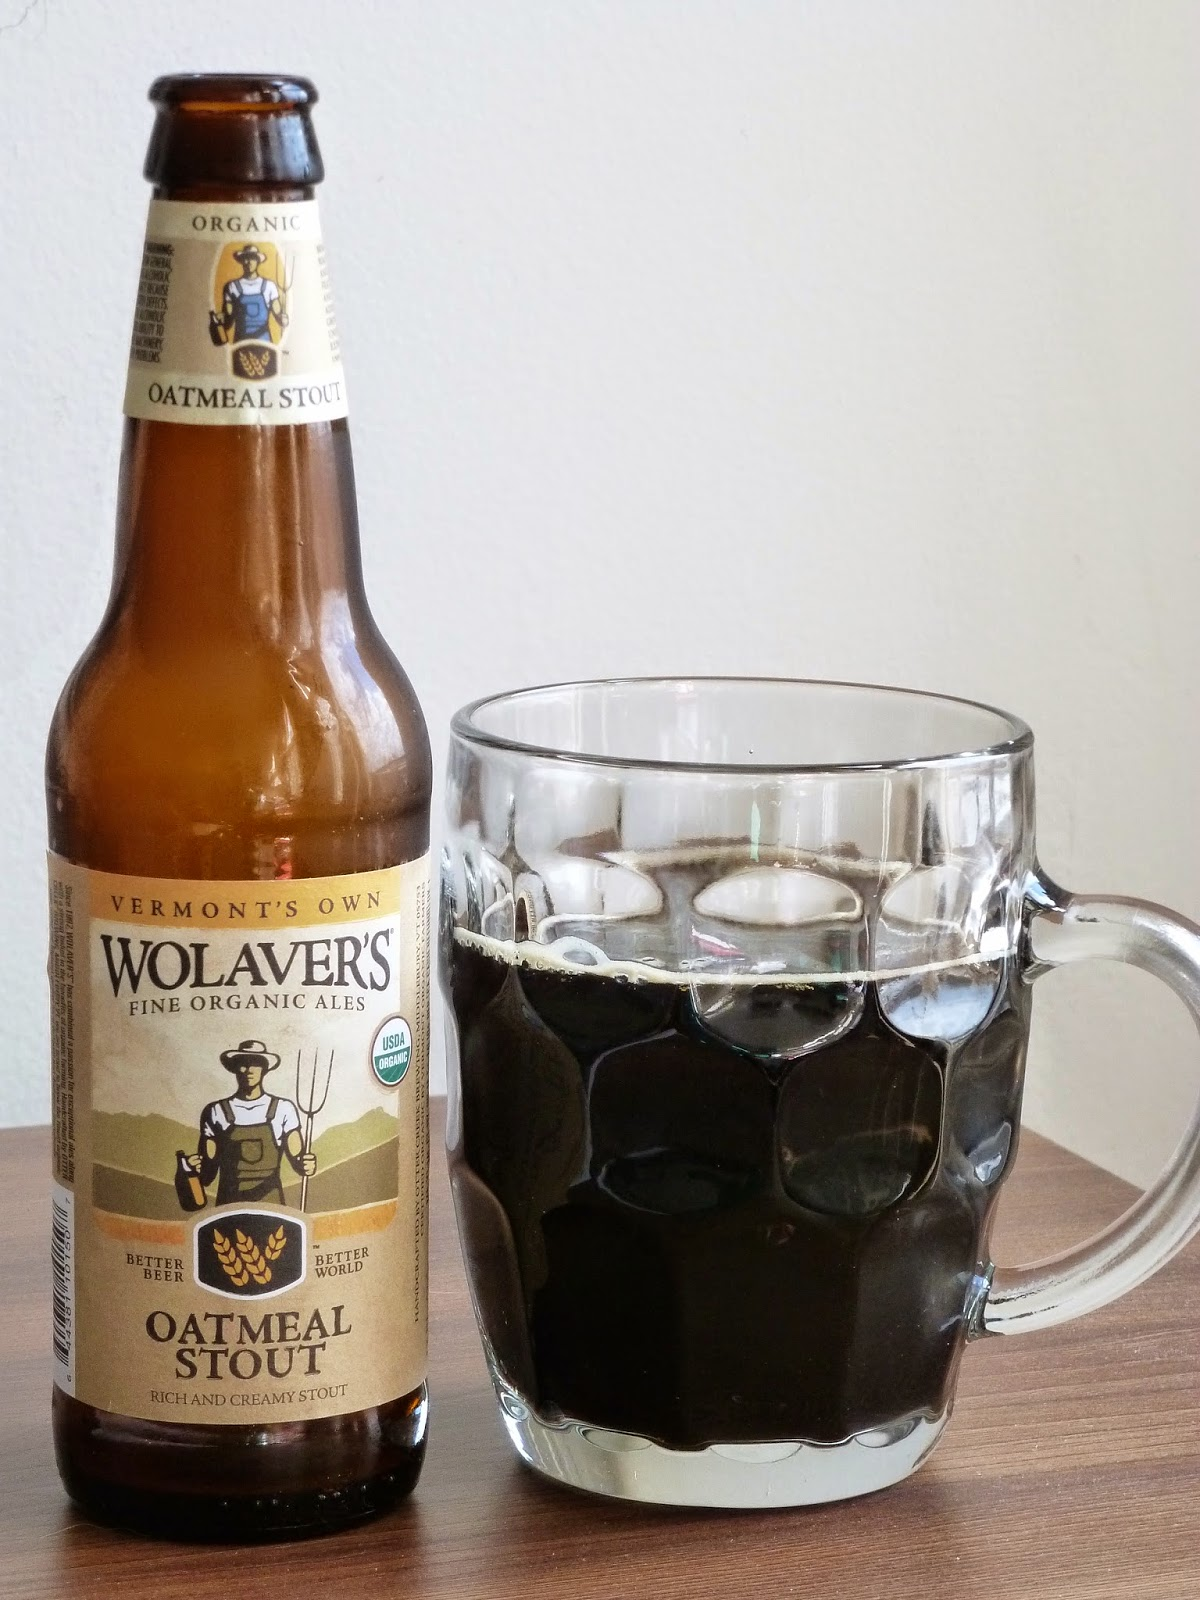 Brewery: Wolaver's/Otter Creek Brewing Beer: Oatmeal Stout | Beer Advocate Score: 88 Abv: 5.4%